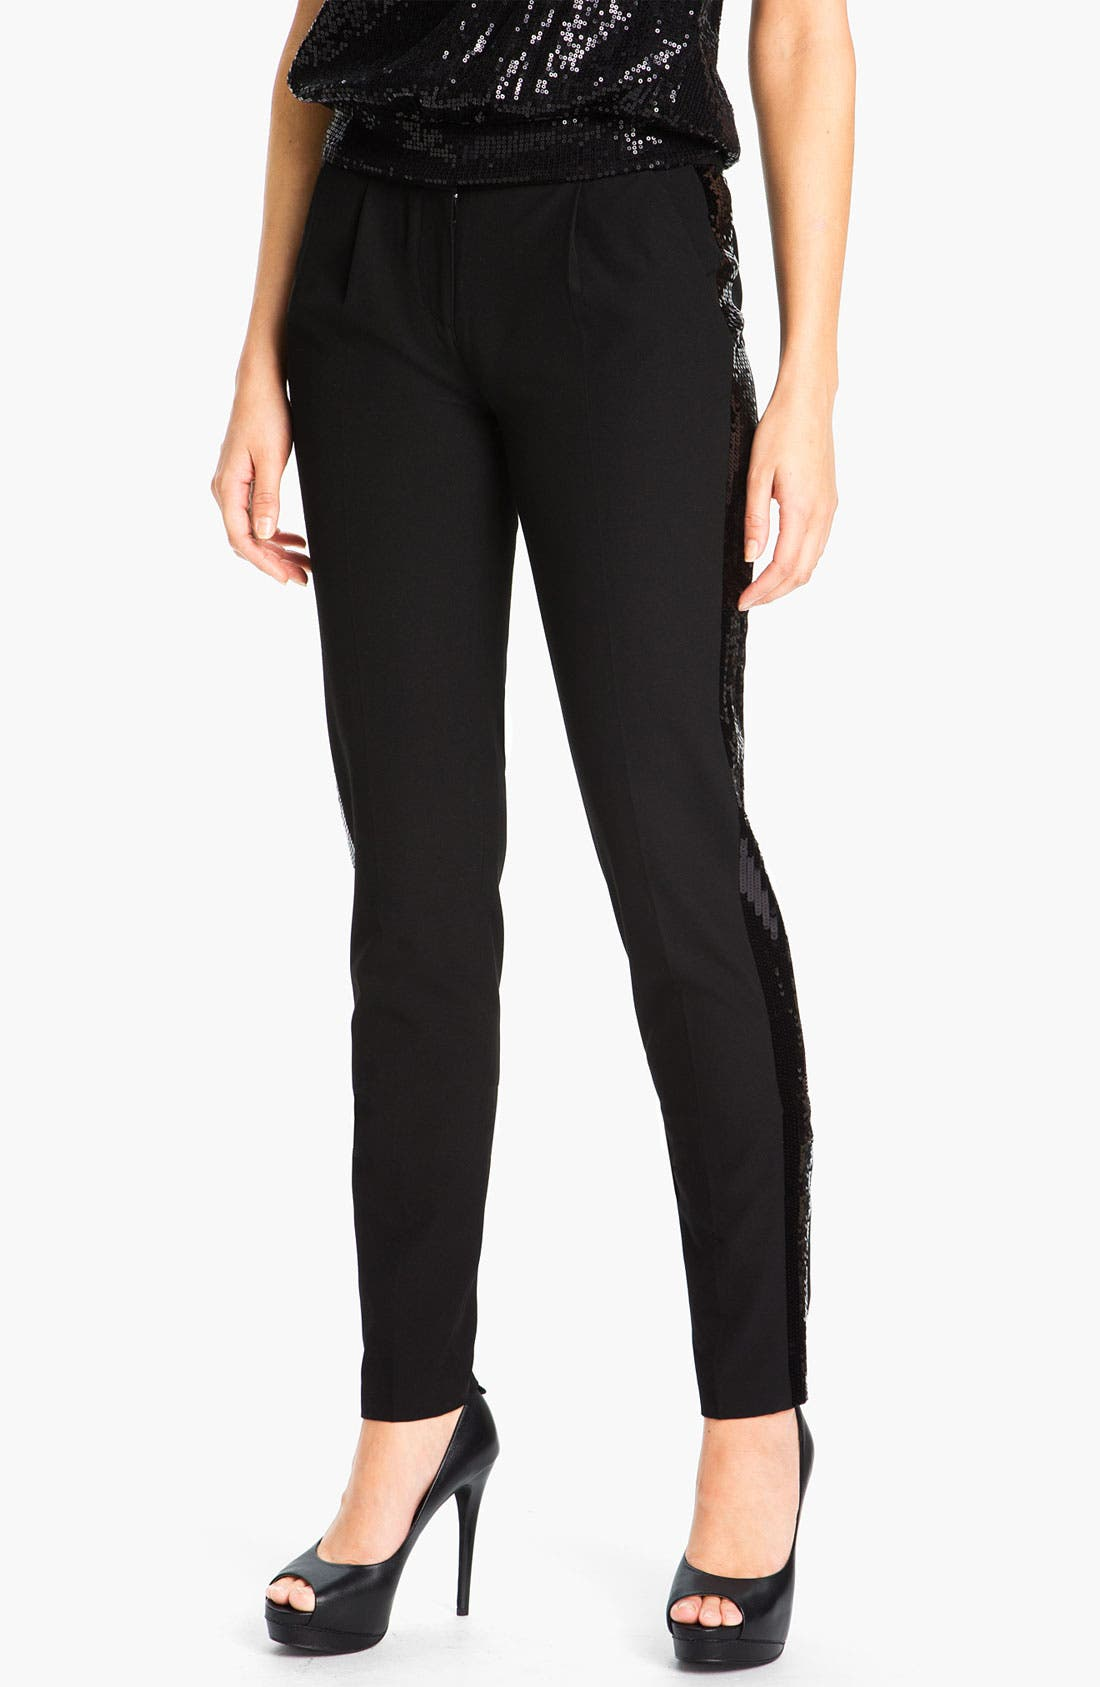 Main Image - MICHAEL Michael Kors Sequin Tuxedo Pants